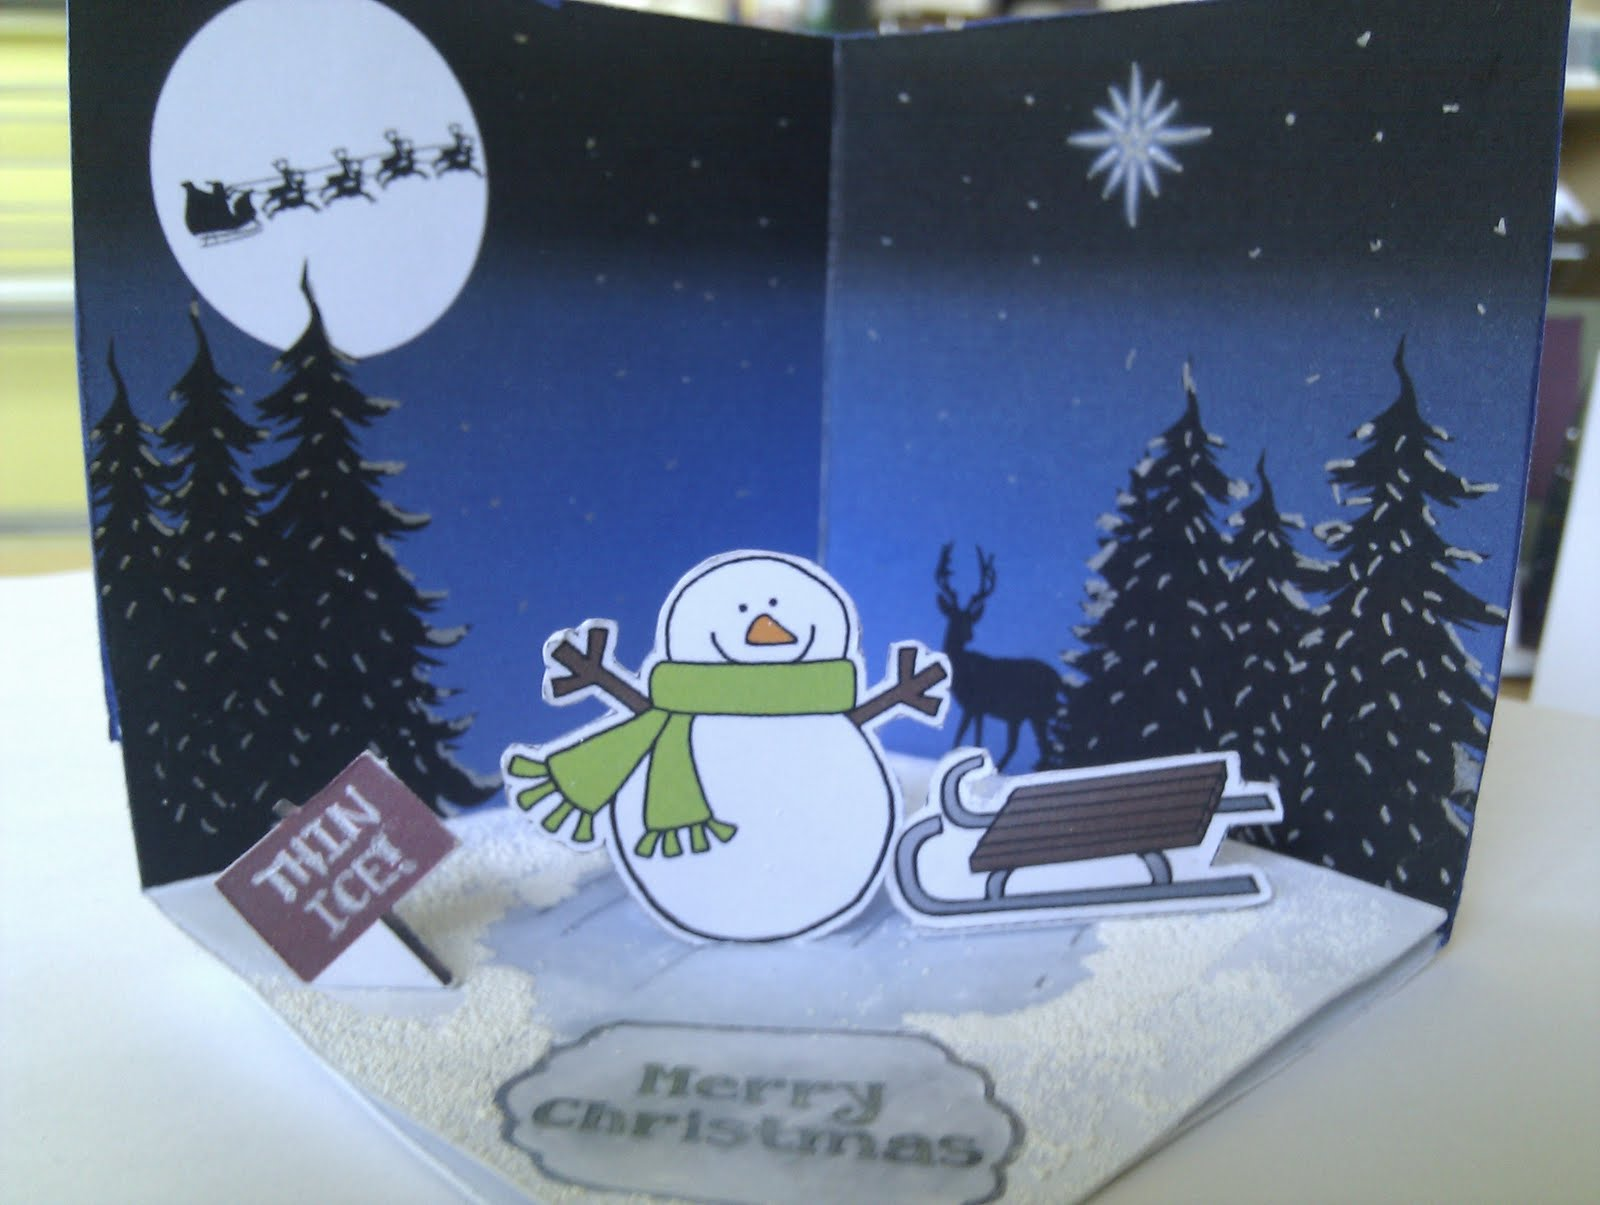 Christmas Cards With Windows Window on The Card Above